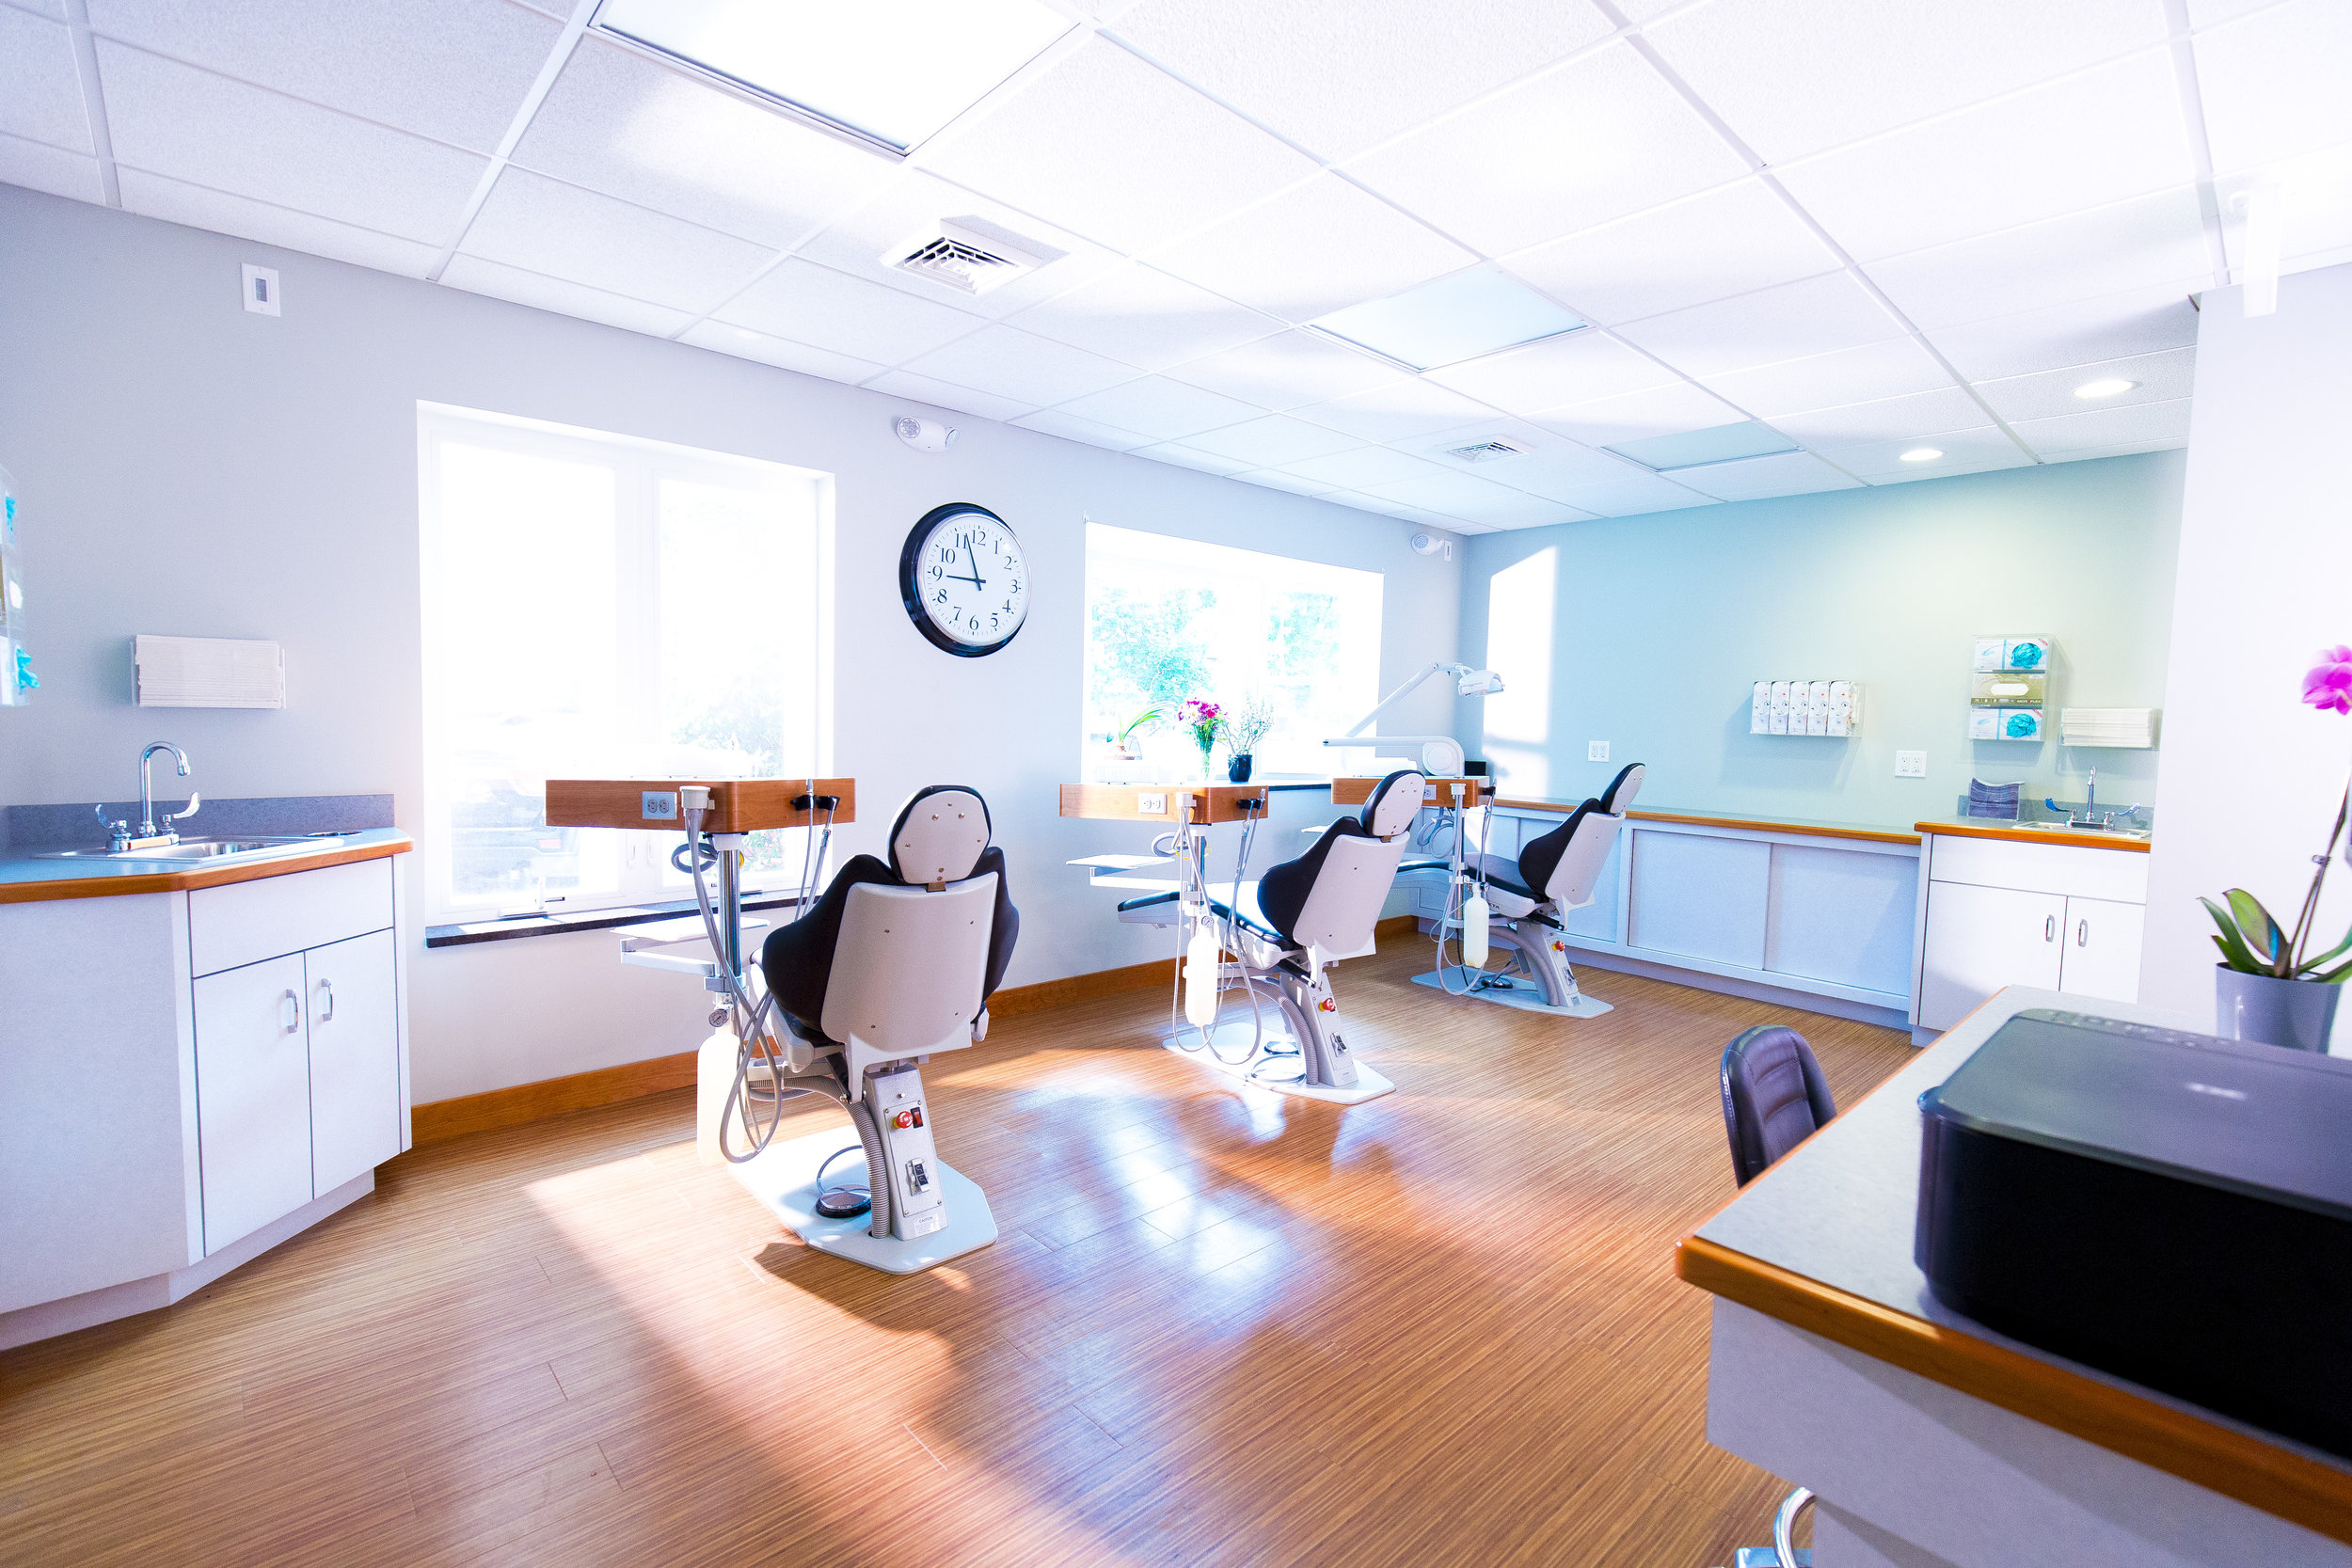 314A1800 Giovanni The Photographer-Boston Lorenz OrthodonticsCorporate Dental Dentist Orthodontics Headquarter  Lorenz Orthodontics.jpg